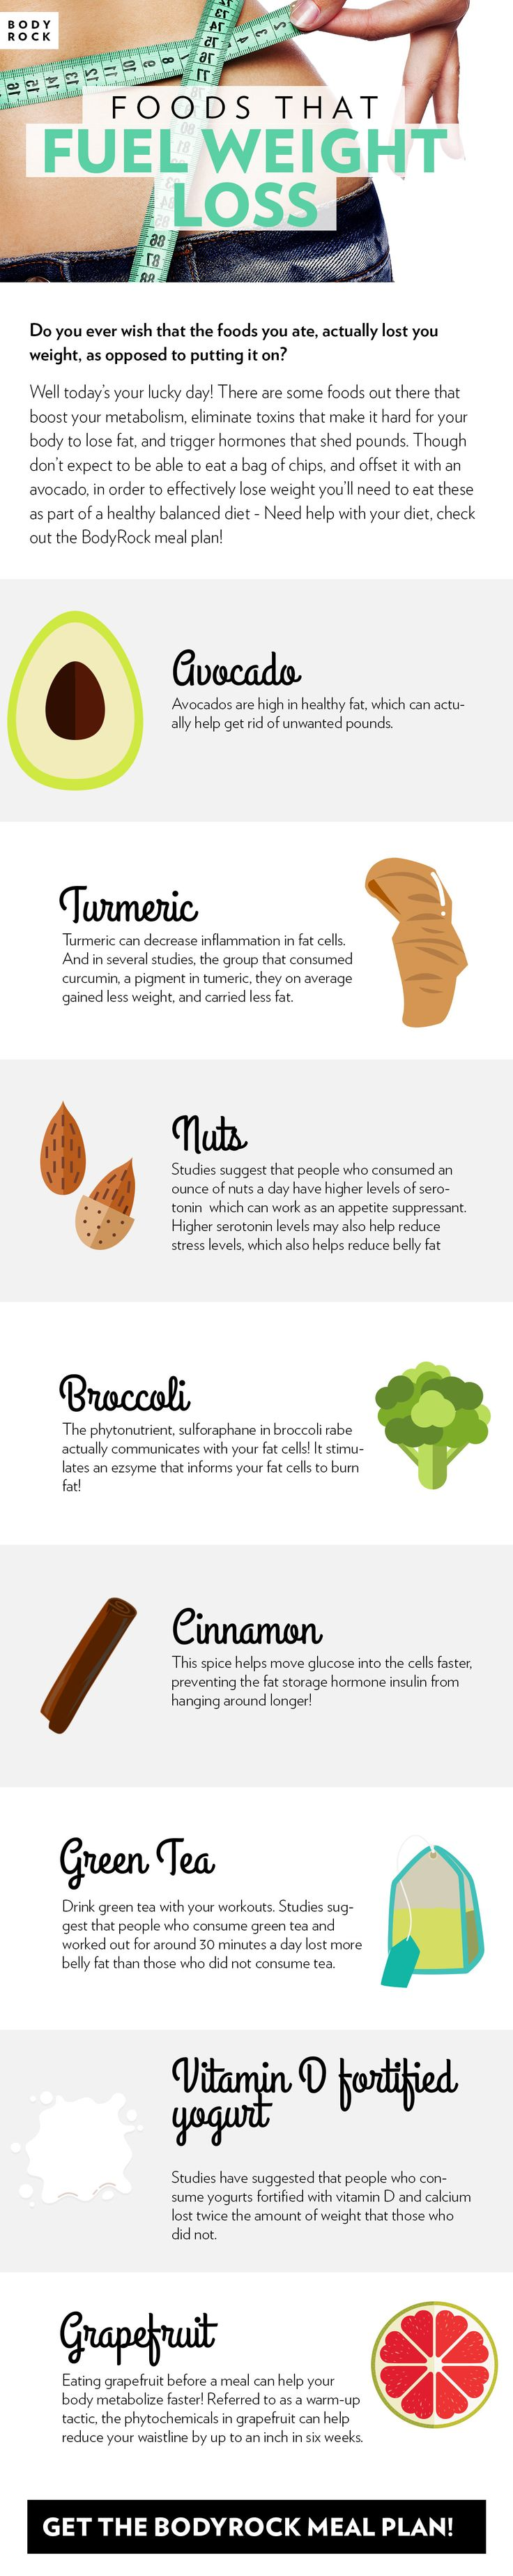 Foods That Fuel Weight Loss (Infographic)